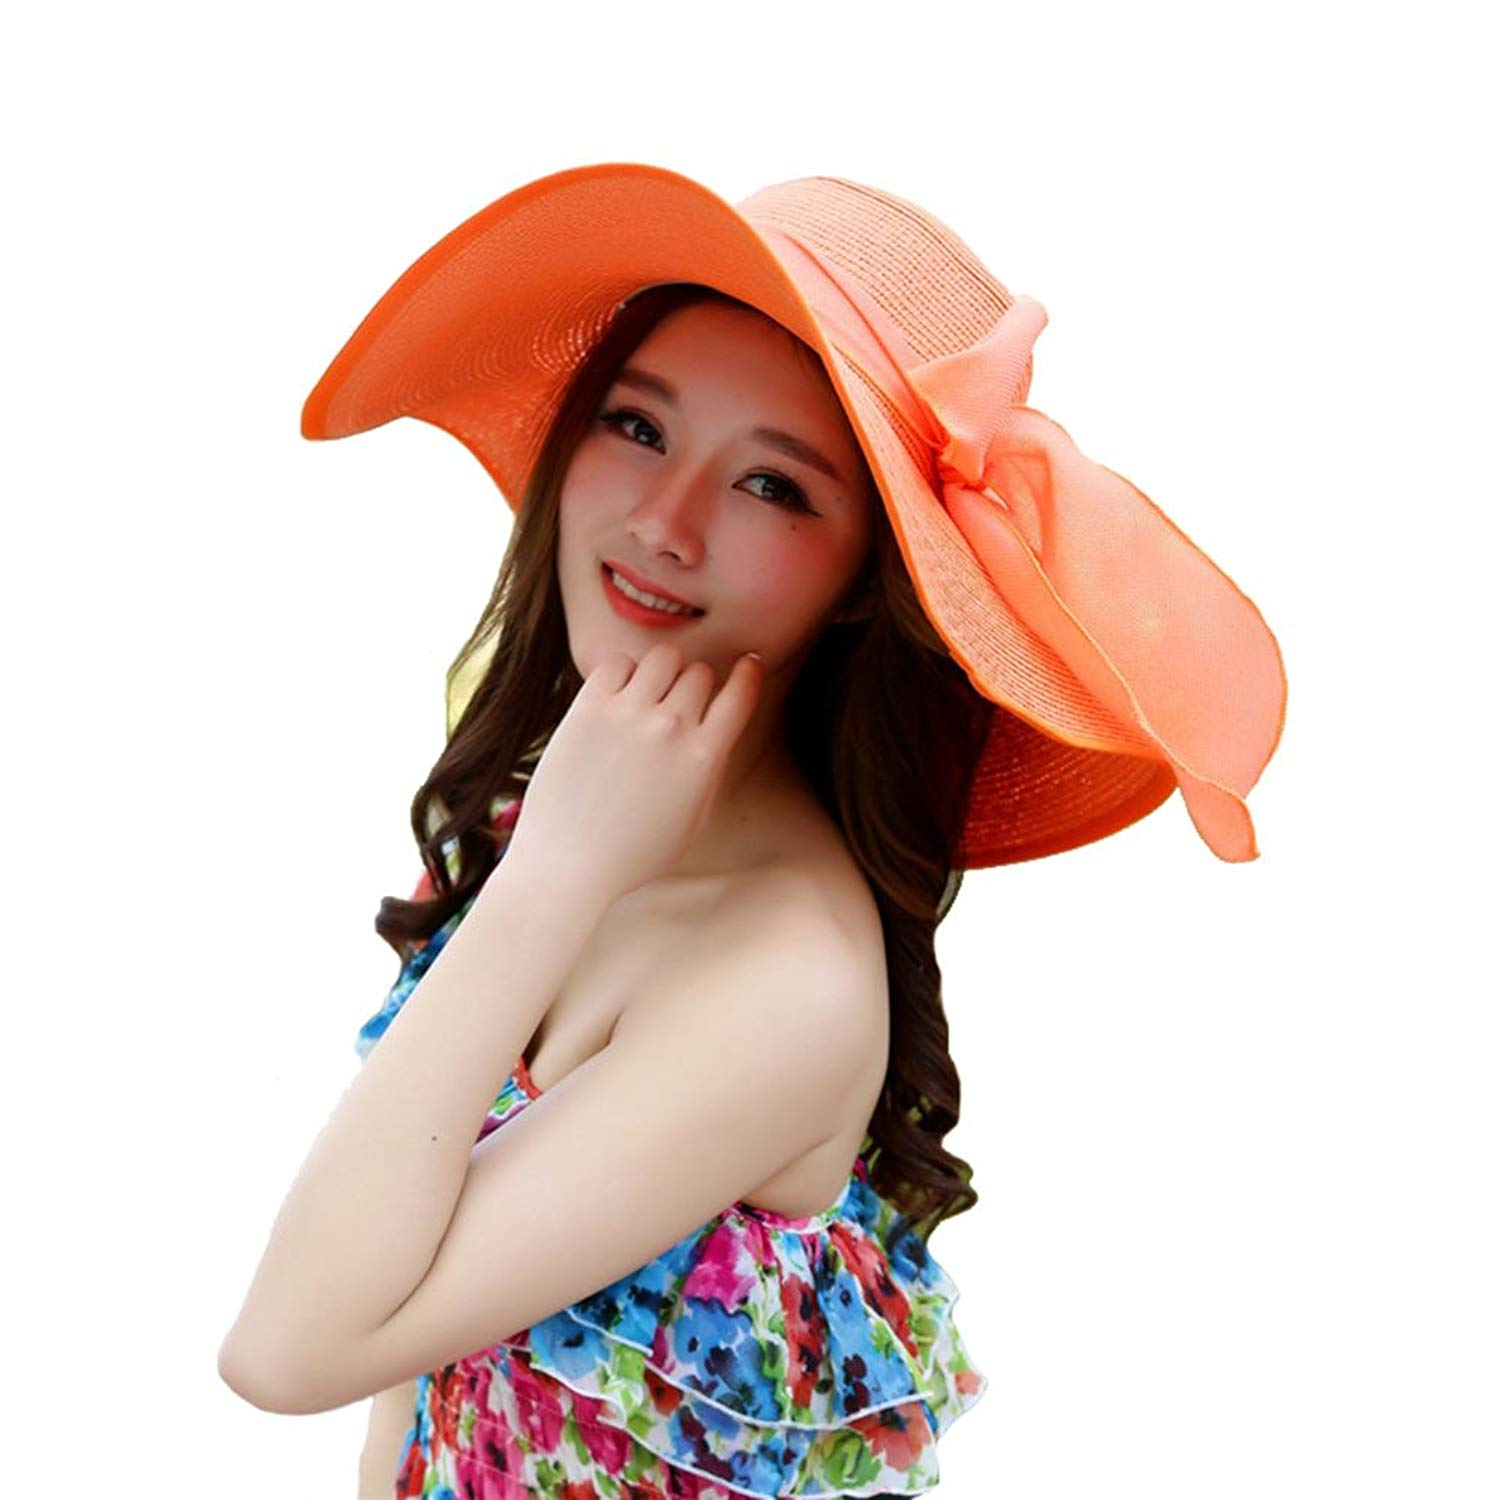 e0cdca1775b8d Get Quotations · Sunscreen Beach Folding Beach Female Beach Vacation Travel  Sun Straw Hat A